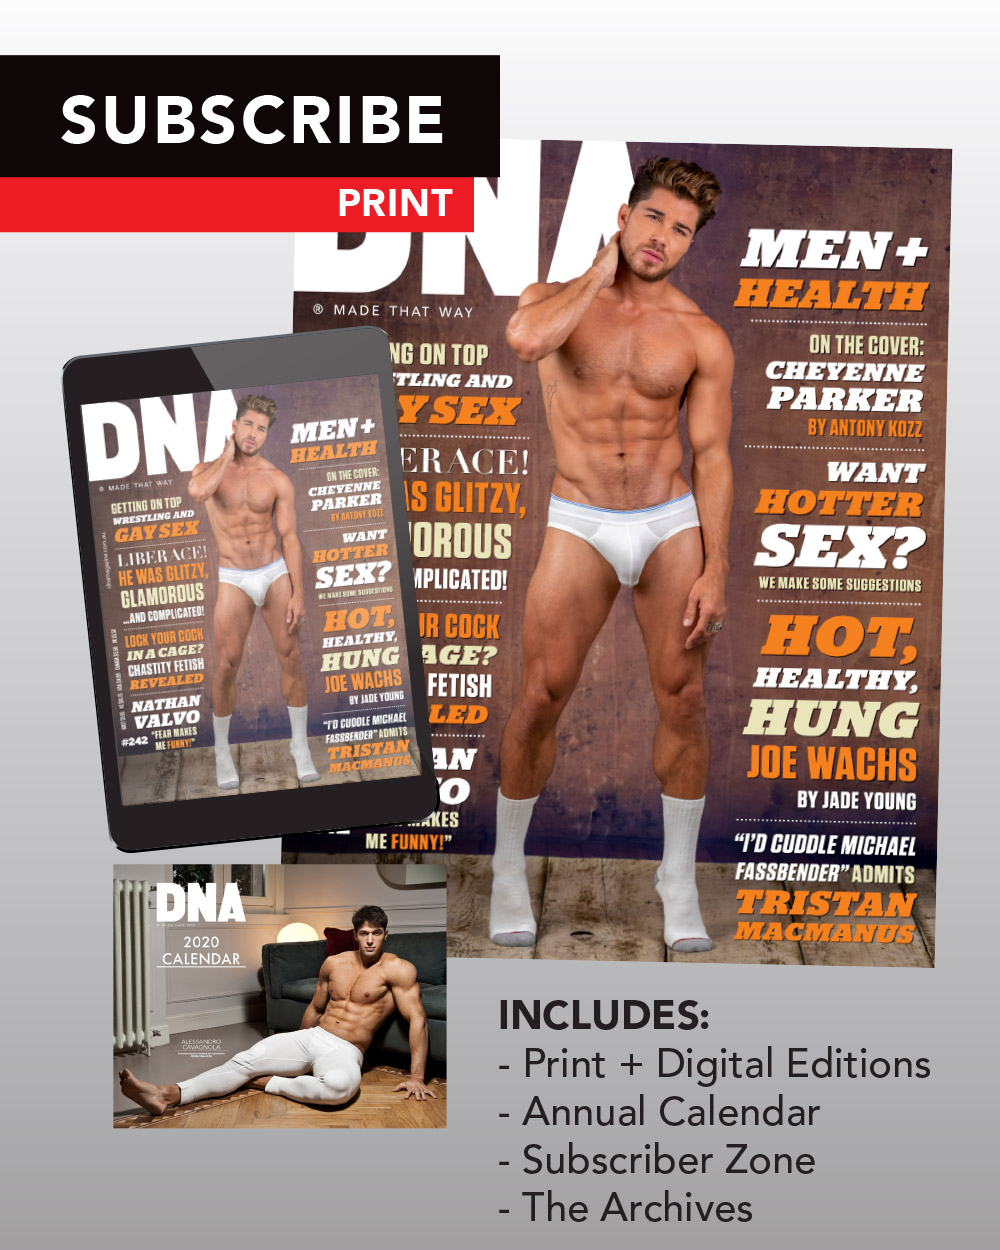 242_Subscribe-Print-Feature